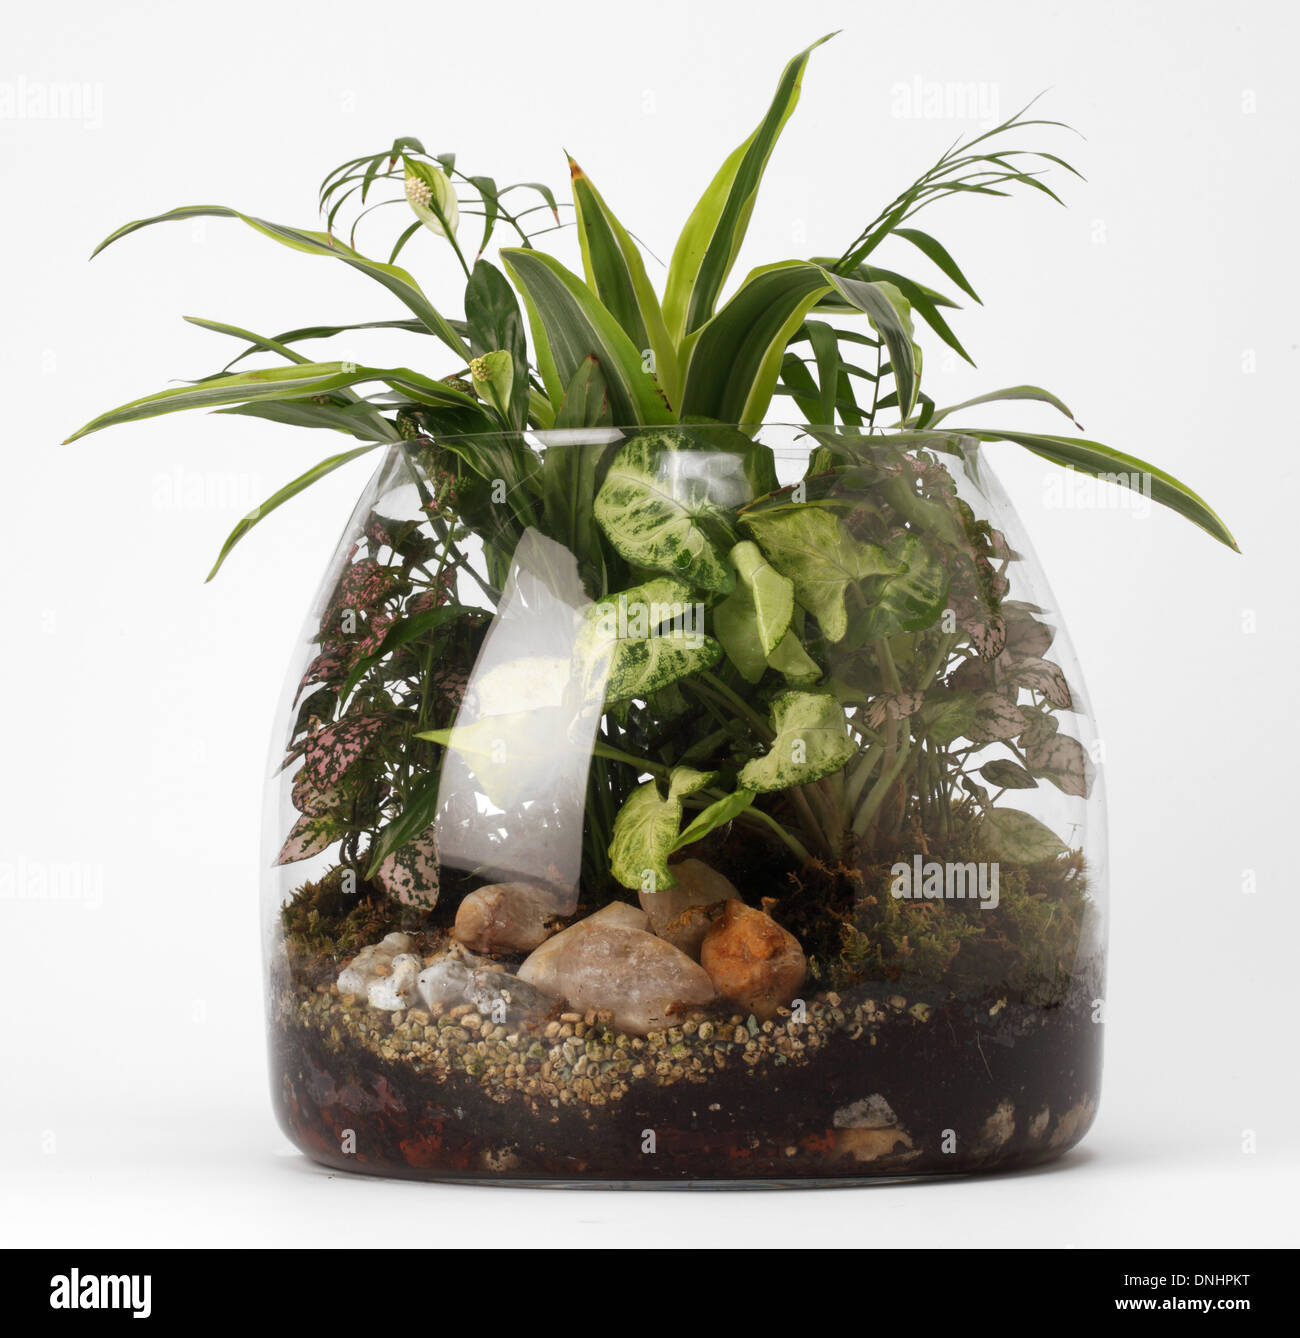 A small glass terrarium with mixed plants on a white background - Stock Image